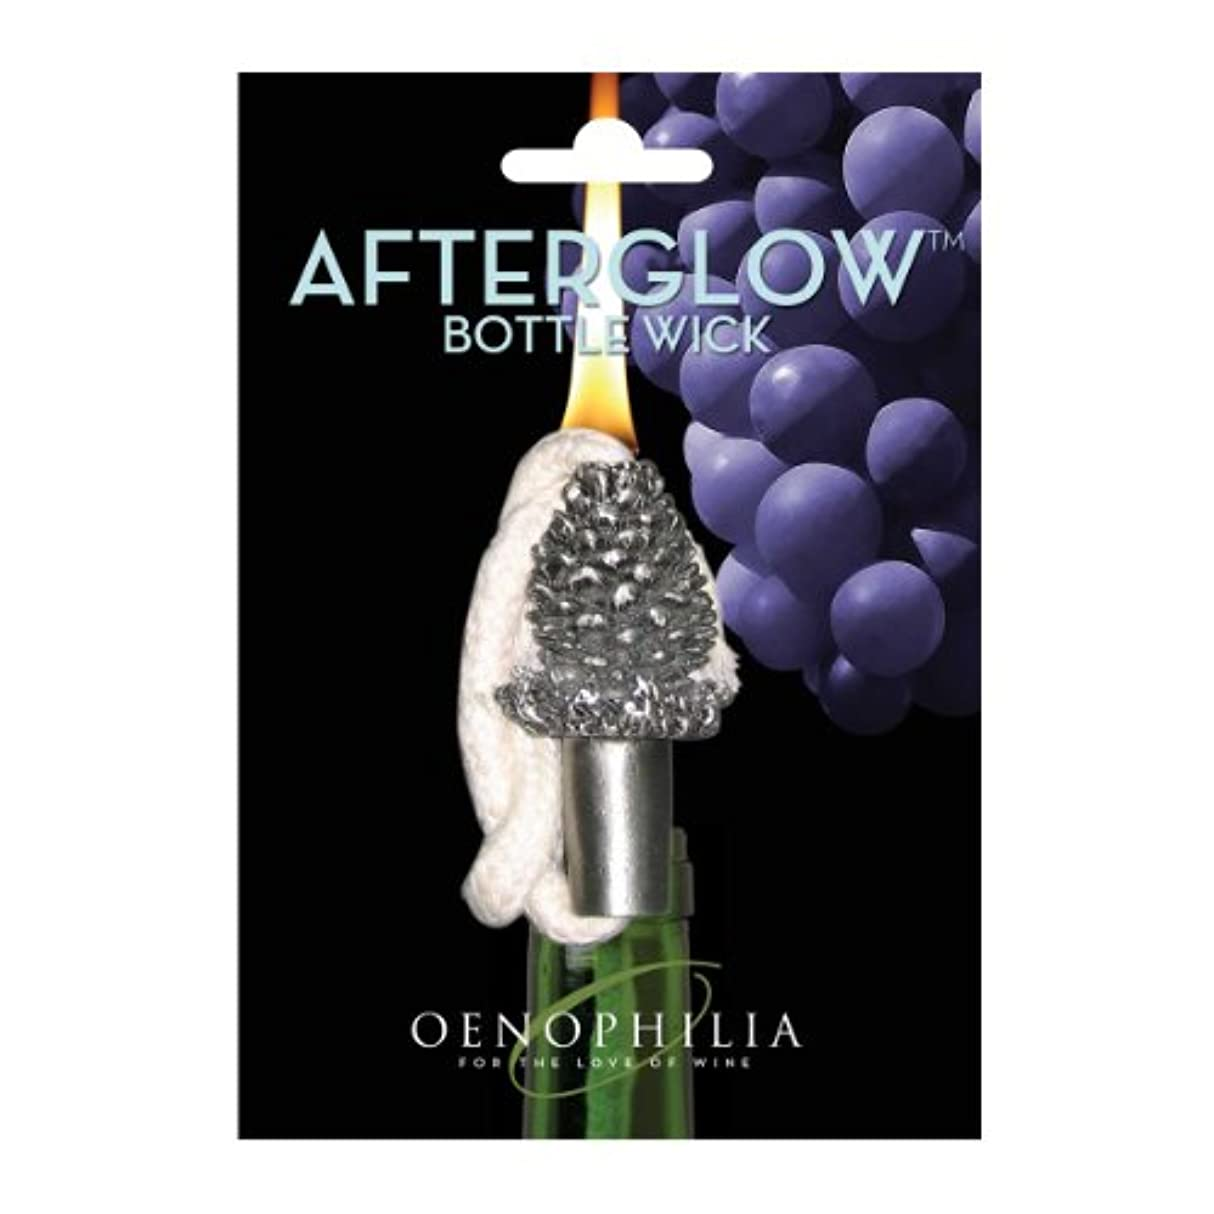 Oenophilia Afterglow Bottle Wick - Pinecone by Oenophilia [並行輸入品]